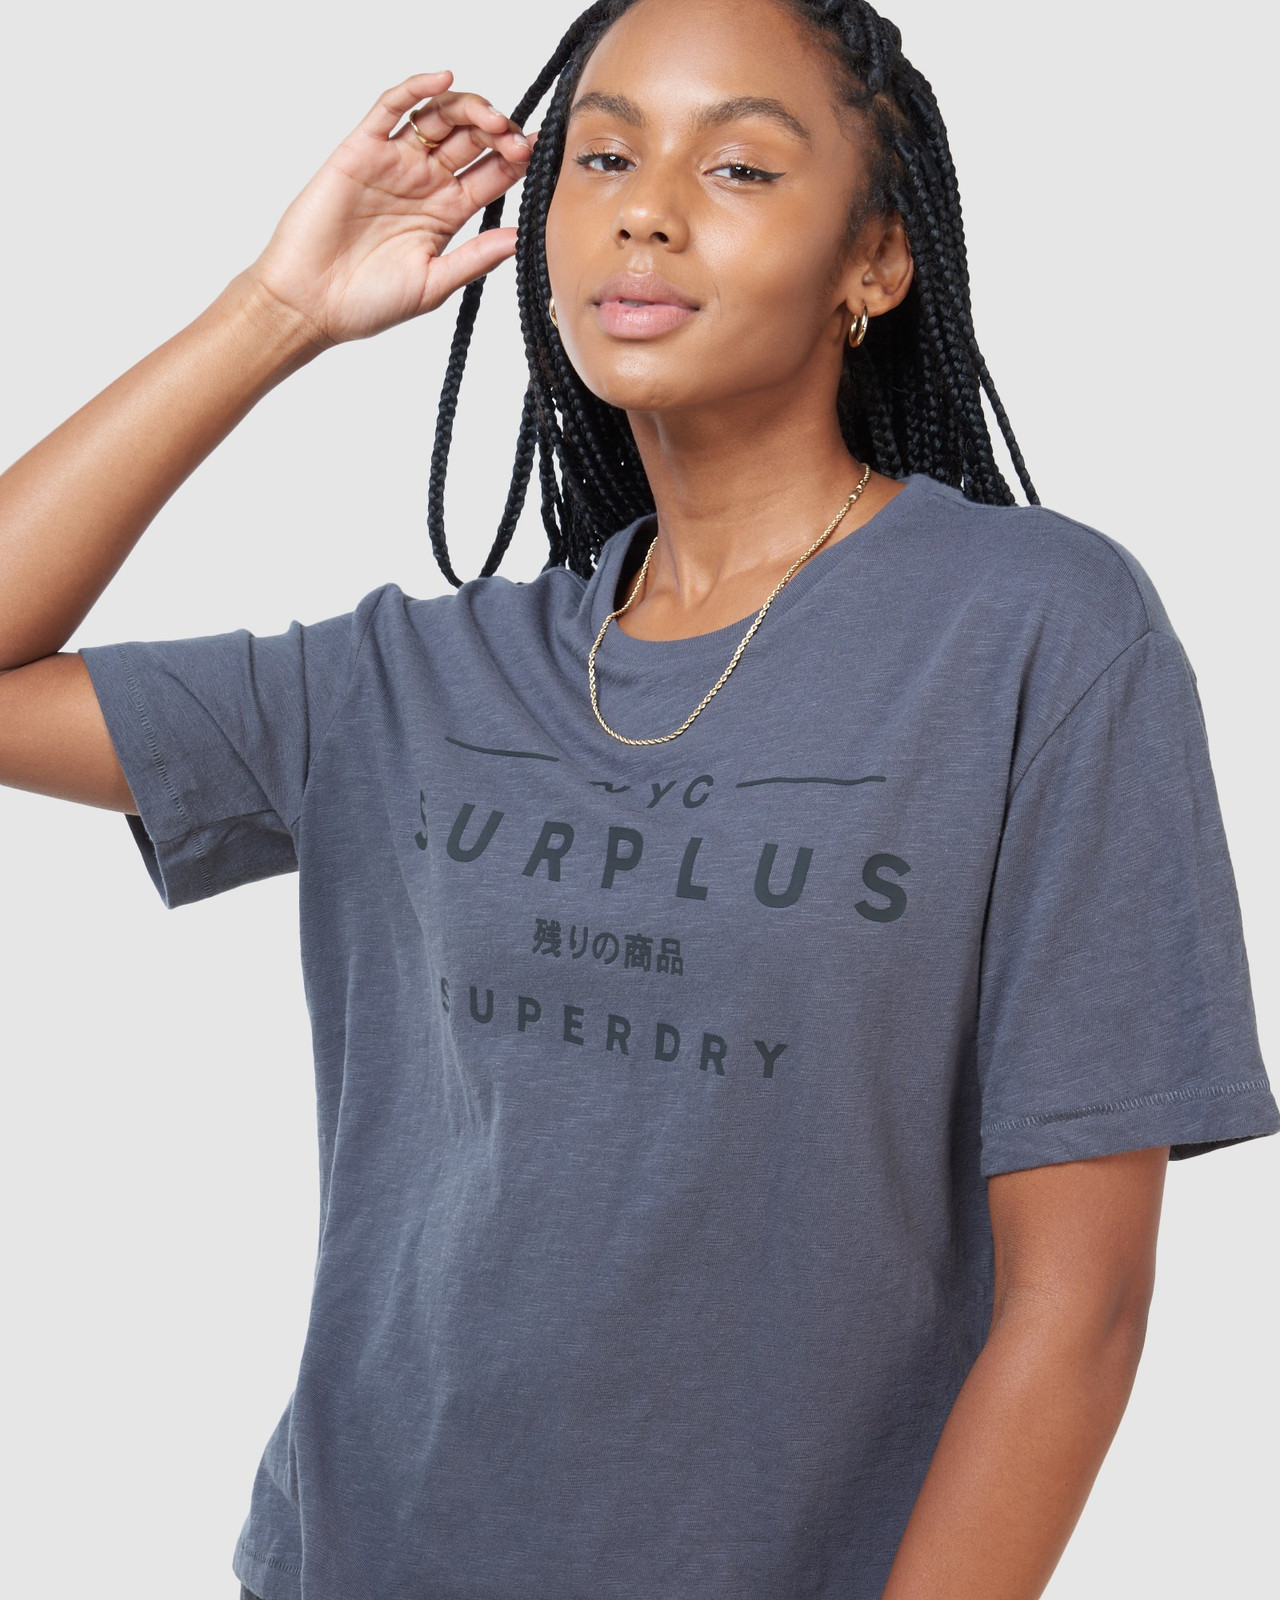 Superdry Womens SURPLUS GRAPHIC TEE Grey Printed T Shirts 5